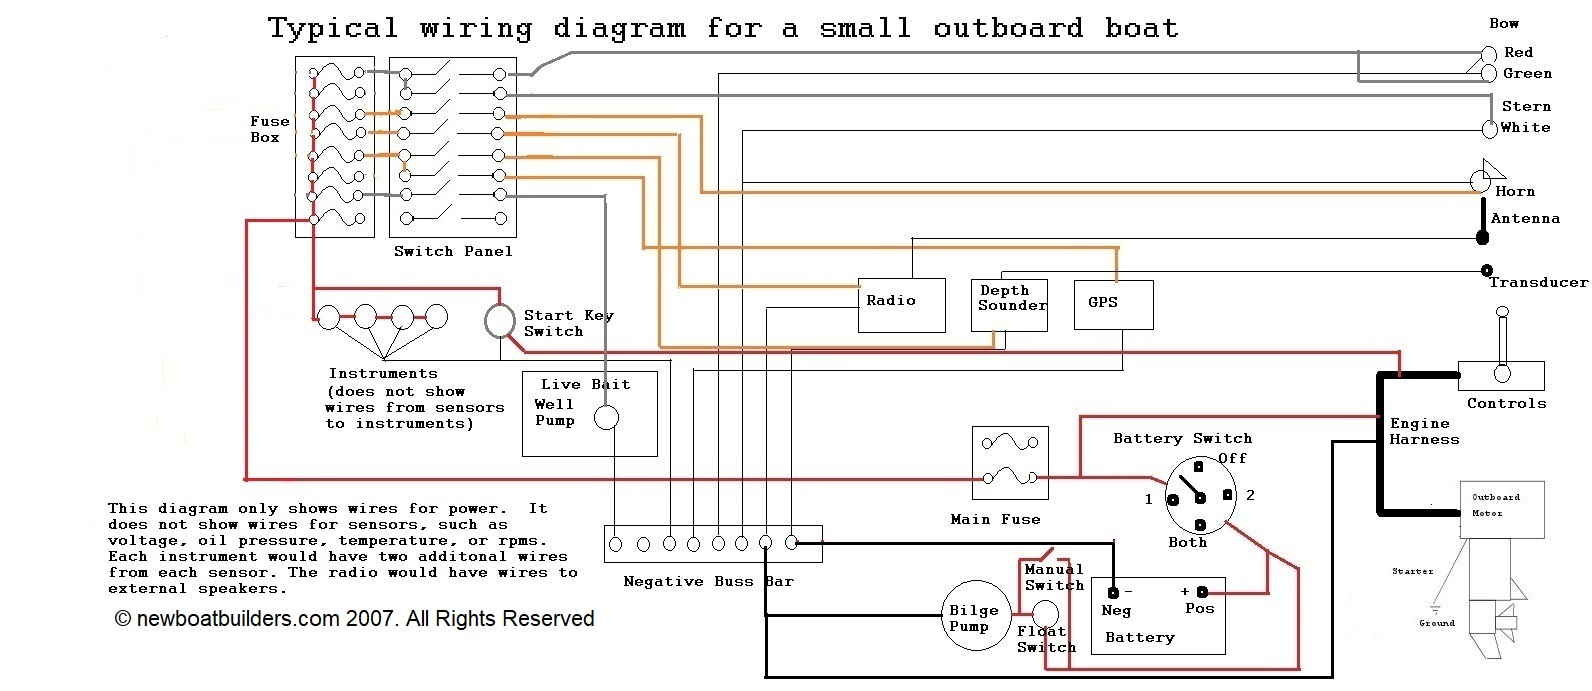 circuit7 boat building standards basic electricity wiring your boat boat bonding wiring diagram at gsmportal.co